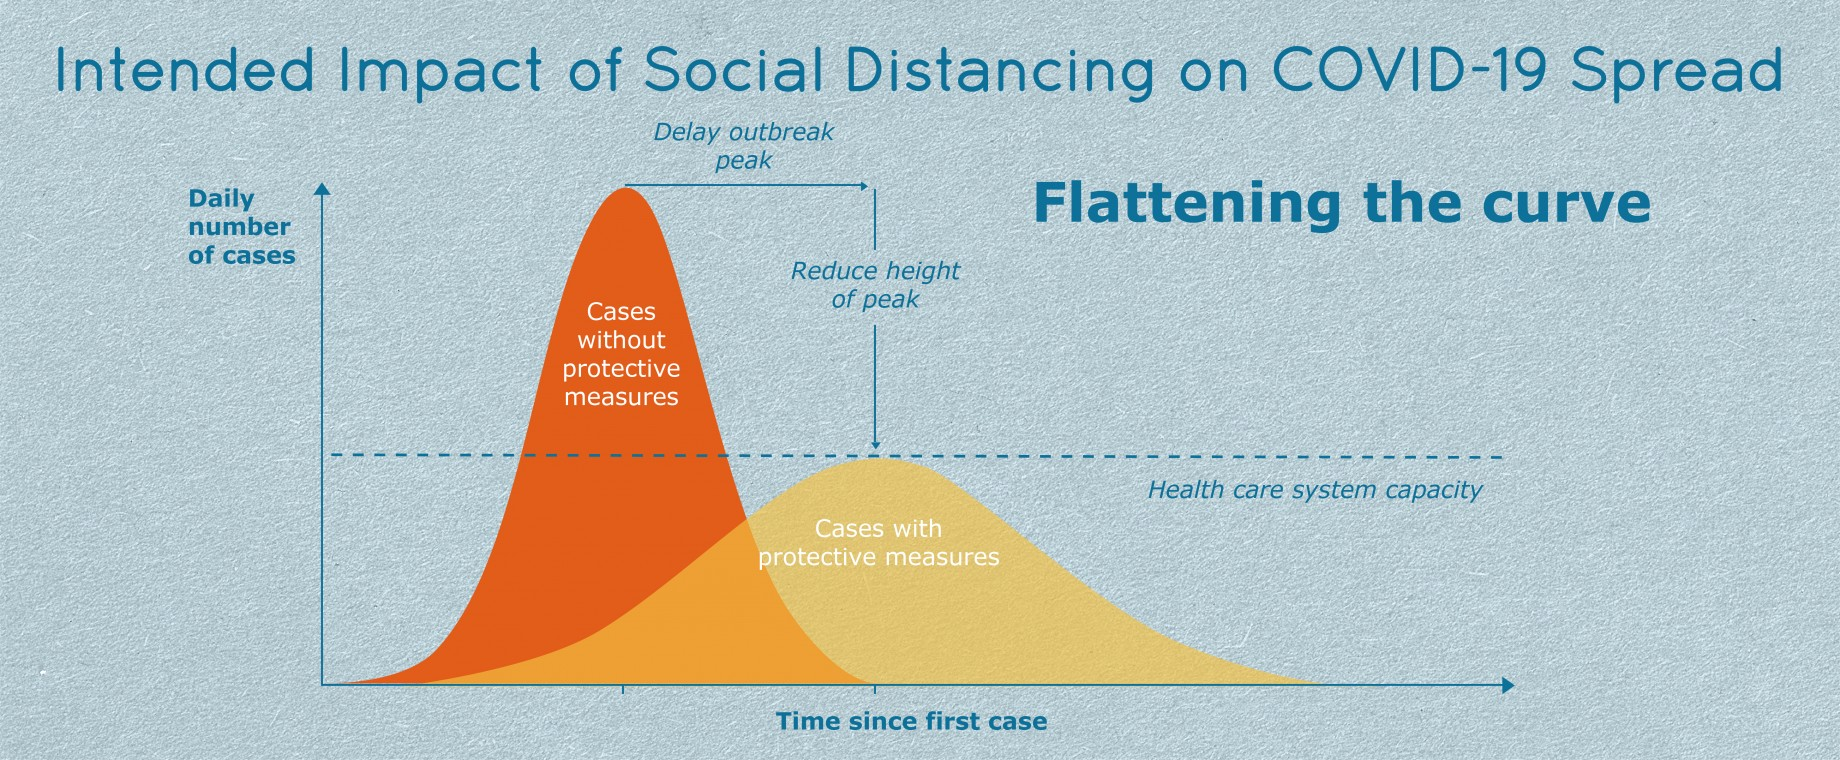 intended_impact_of_social_distancing_on_covid-19_spread.jpg